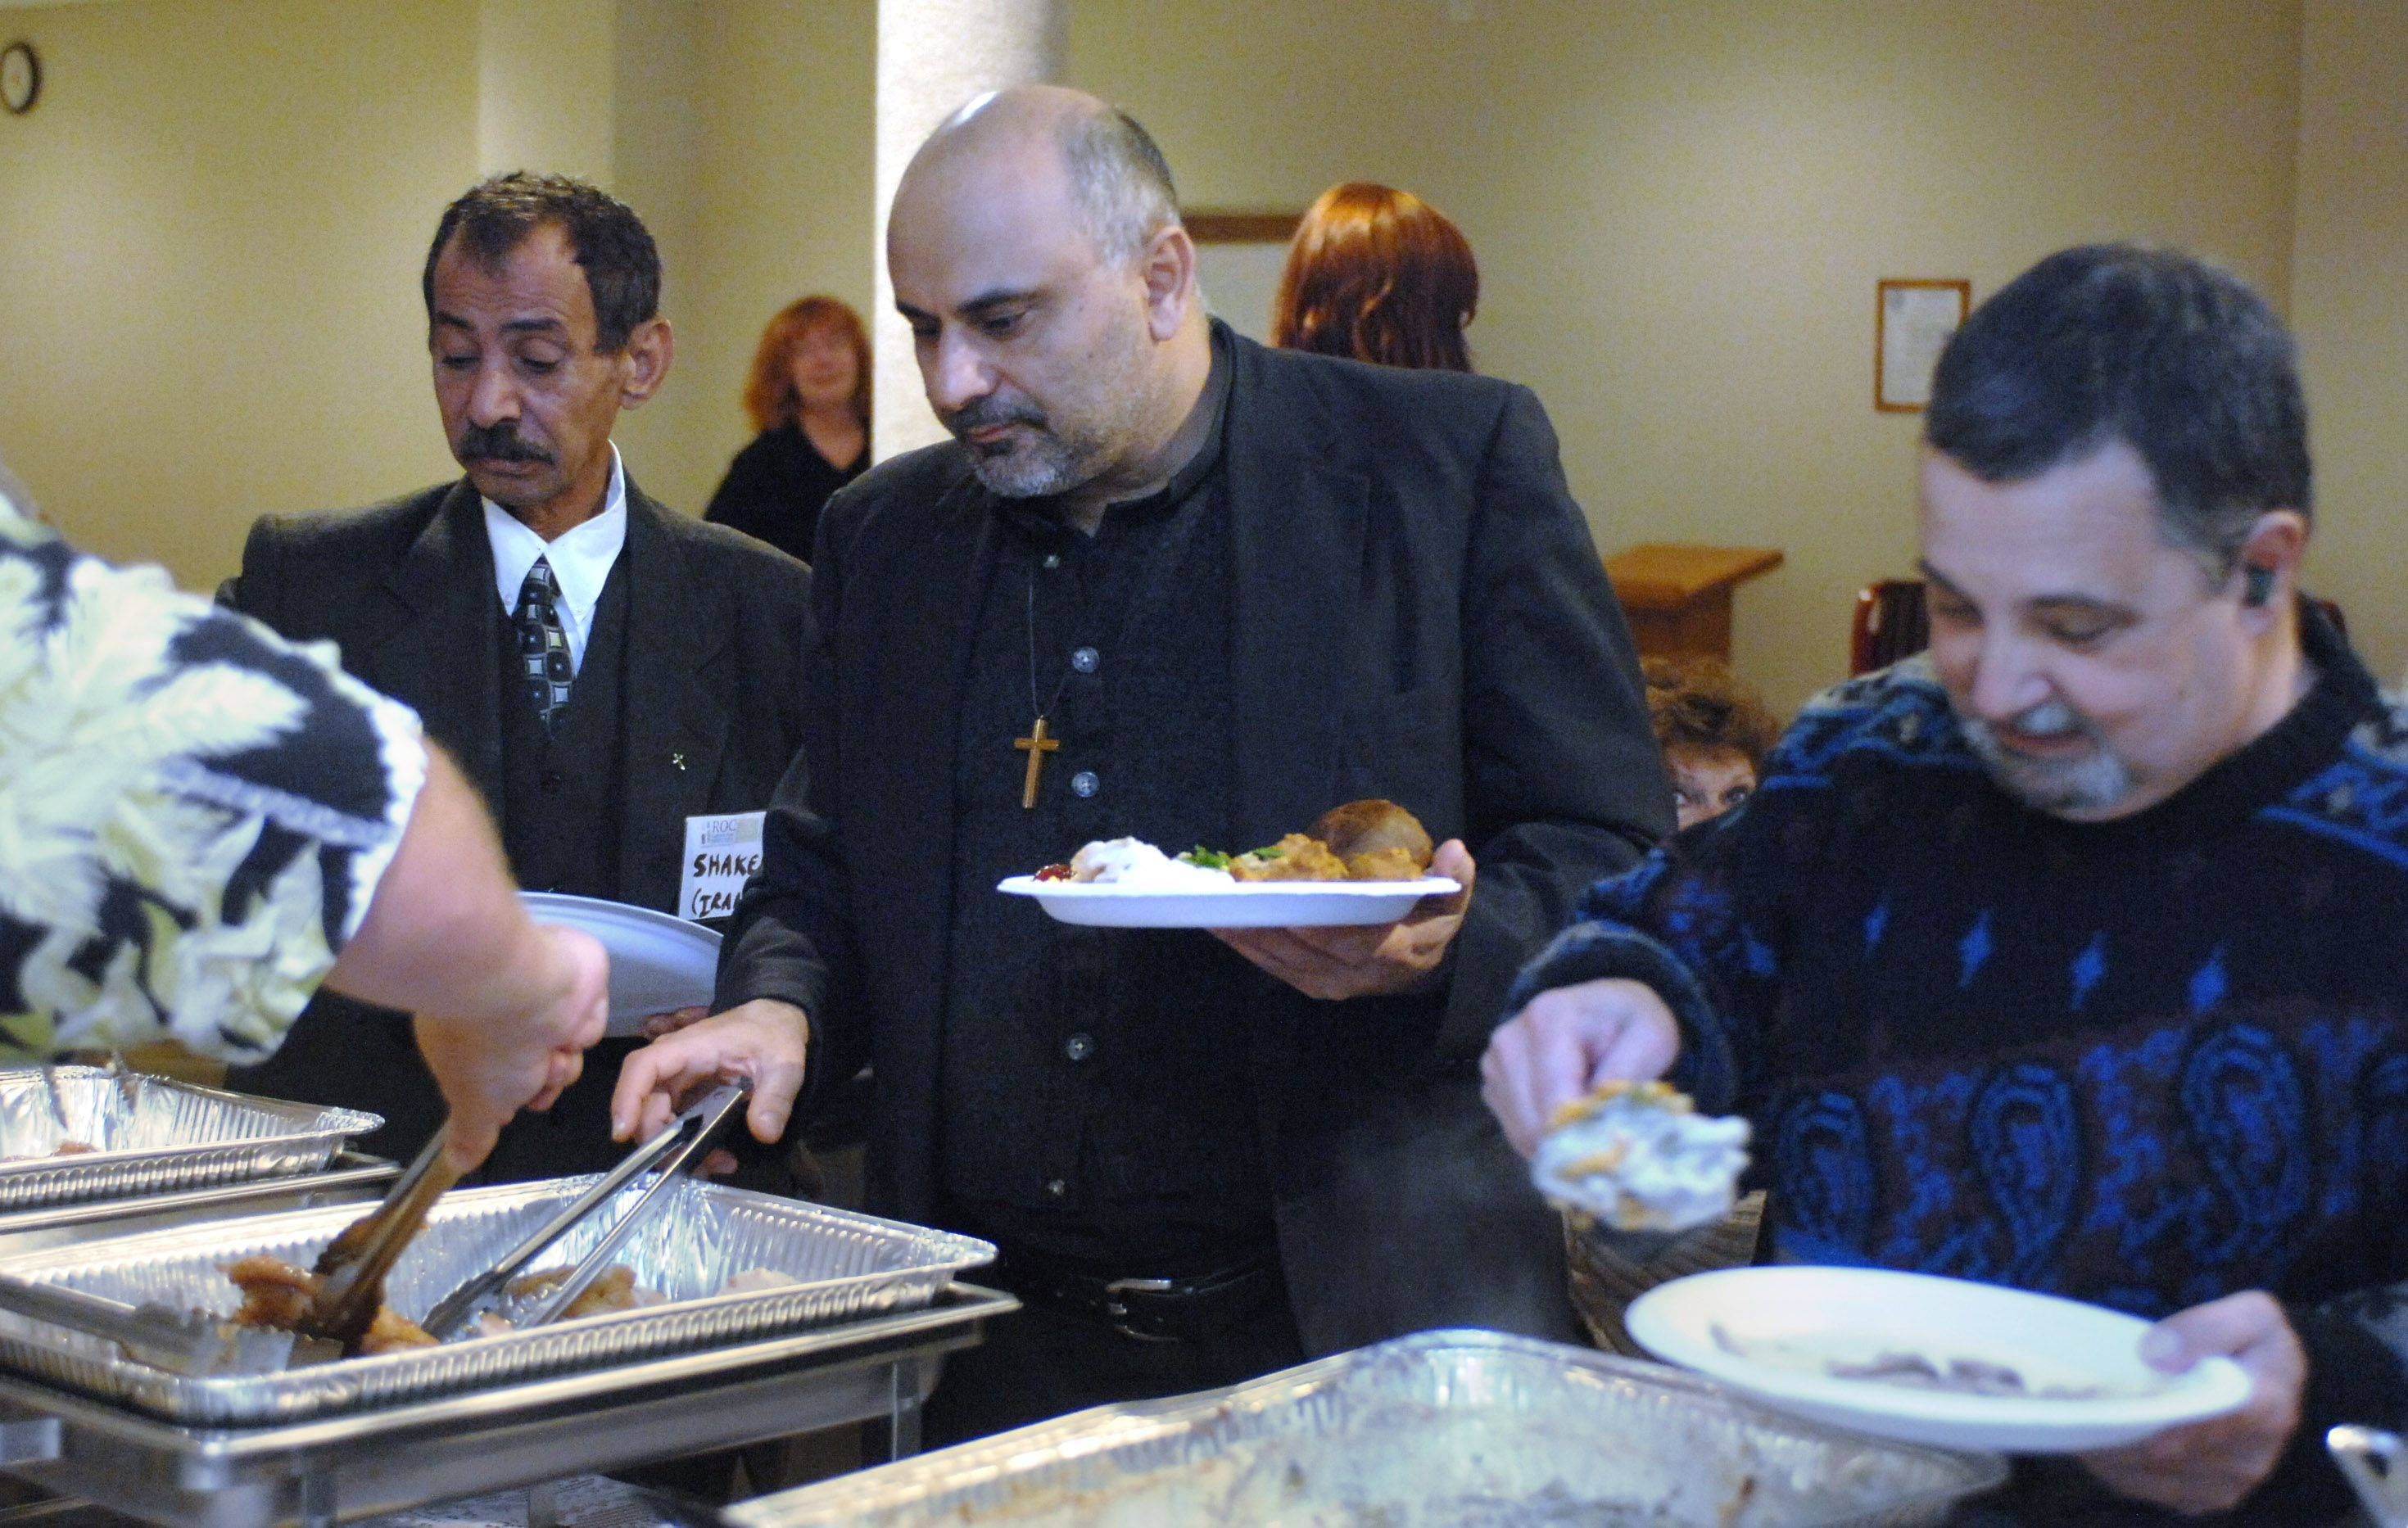 St. Matthew Lutheran Church in Hawthorn Woods held their Thanksgiving meal Thursday with guests, from left, Shaker Khamissi of Iran, Pastor Hicham Chehab of Salam Arabic Fellowship Church and Tony Crisara of Mundelein.